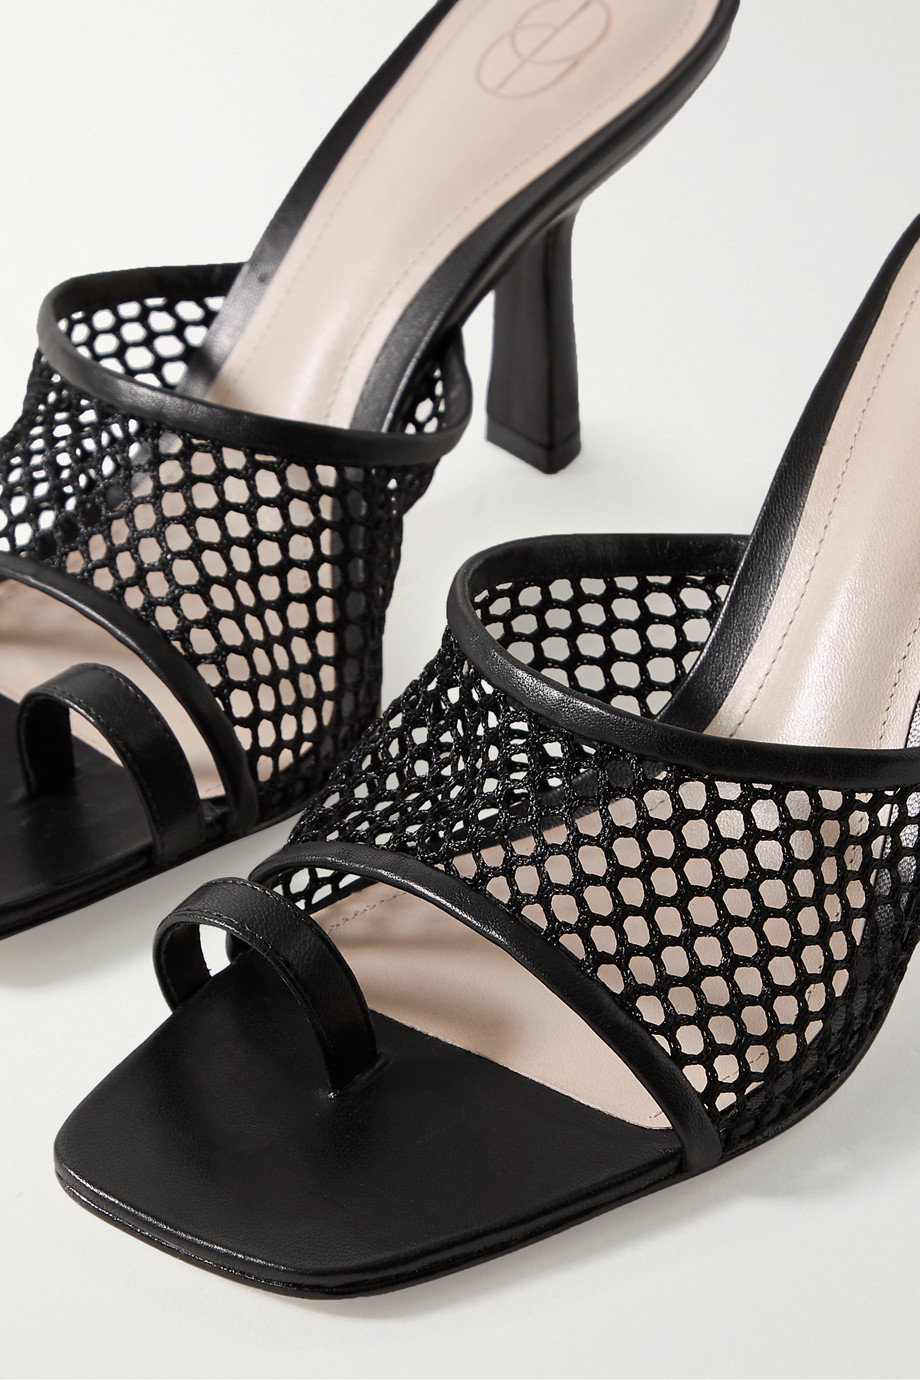 DIP YOUR TOES INTO THIS SEASON'S COOLEST SHOES